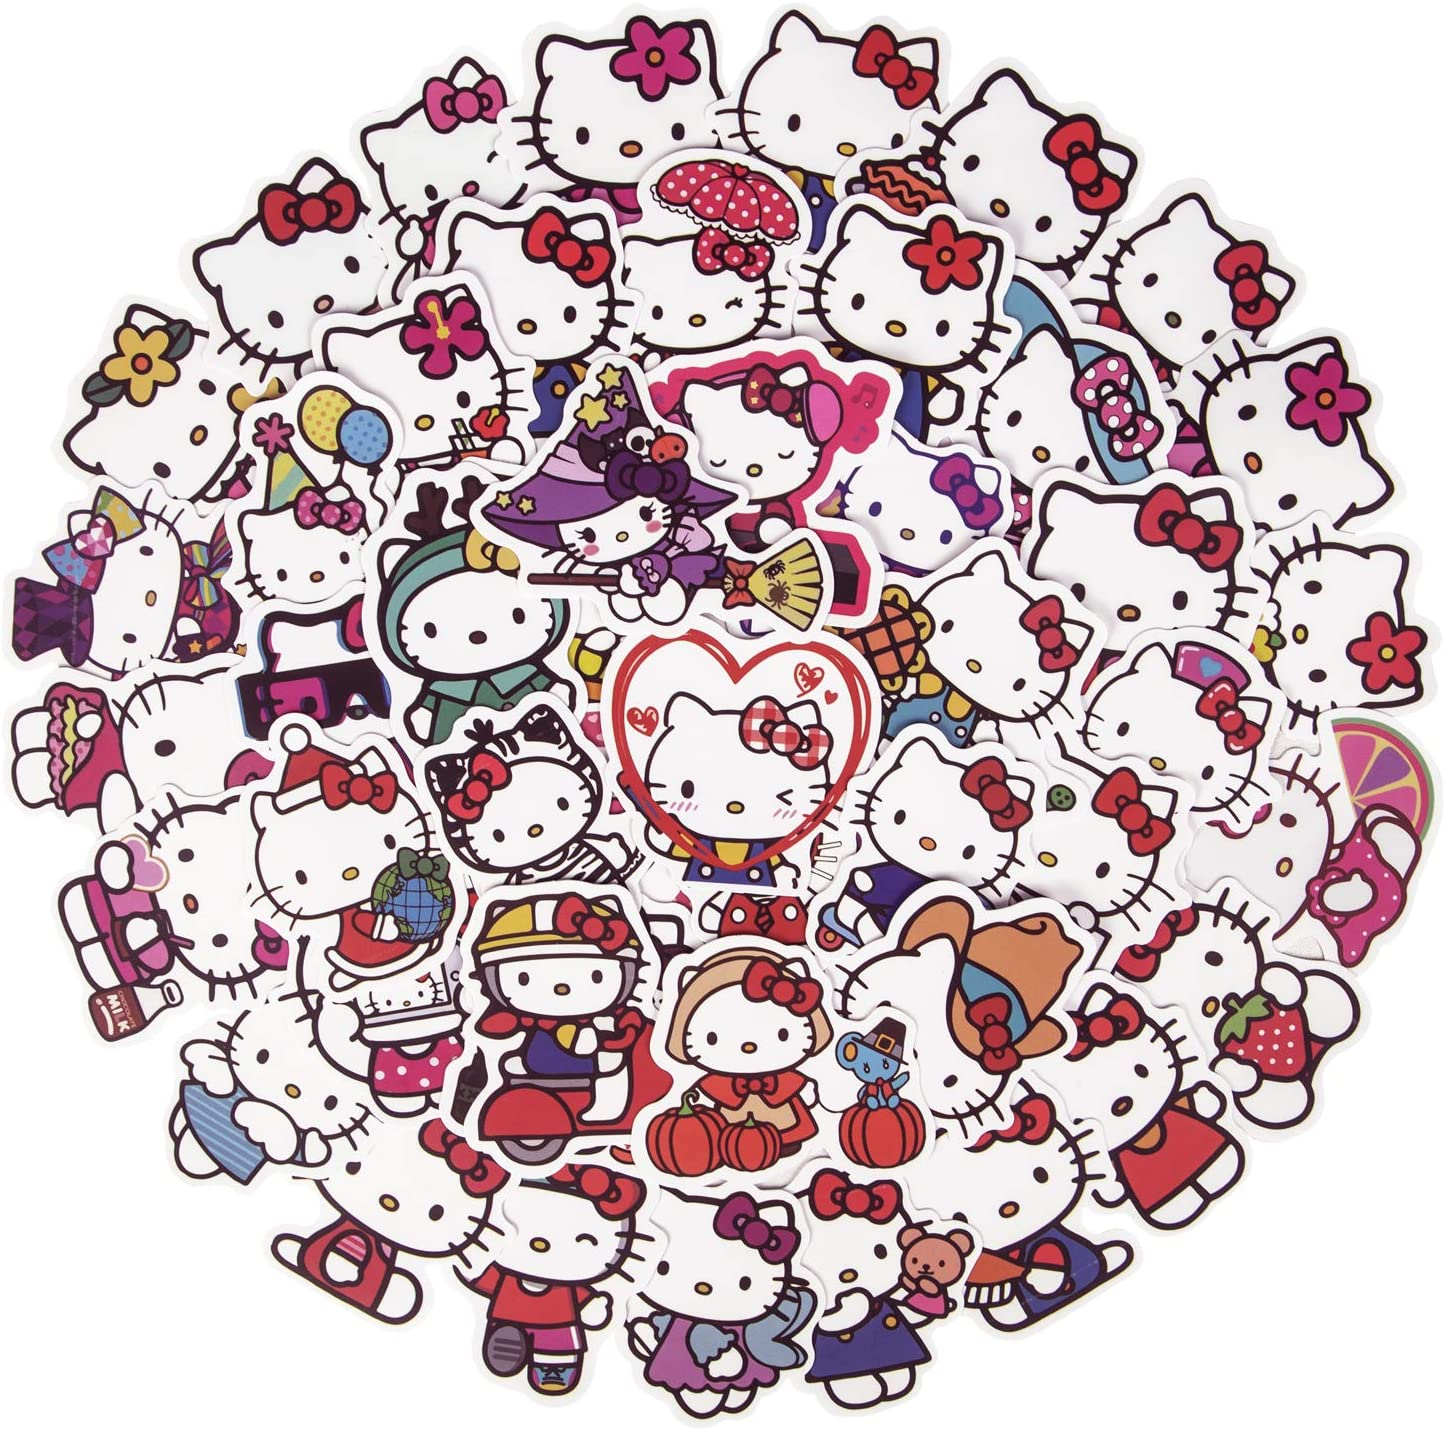 Cute Hello Kitty Stickers for Water Bottles, 50Pcs Lovely Waterproof Laptop Stickers for Skateboard Cup Guitar Luggage, Vinyl Aesthetic Kawaii Stickers for Kids Girls Teens(Hello Kitty)